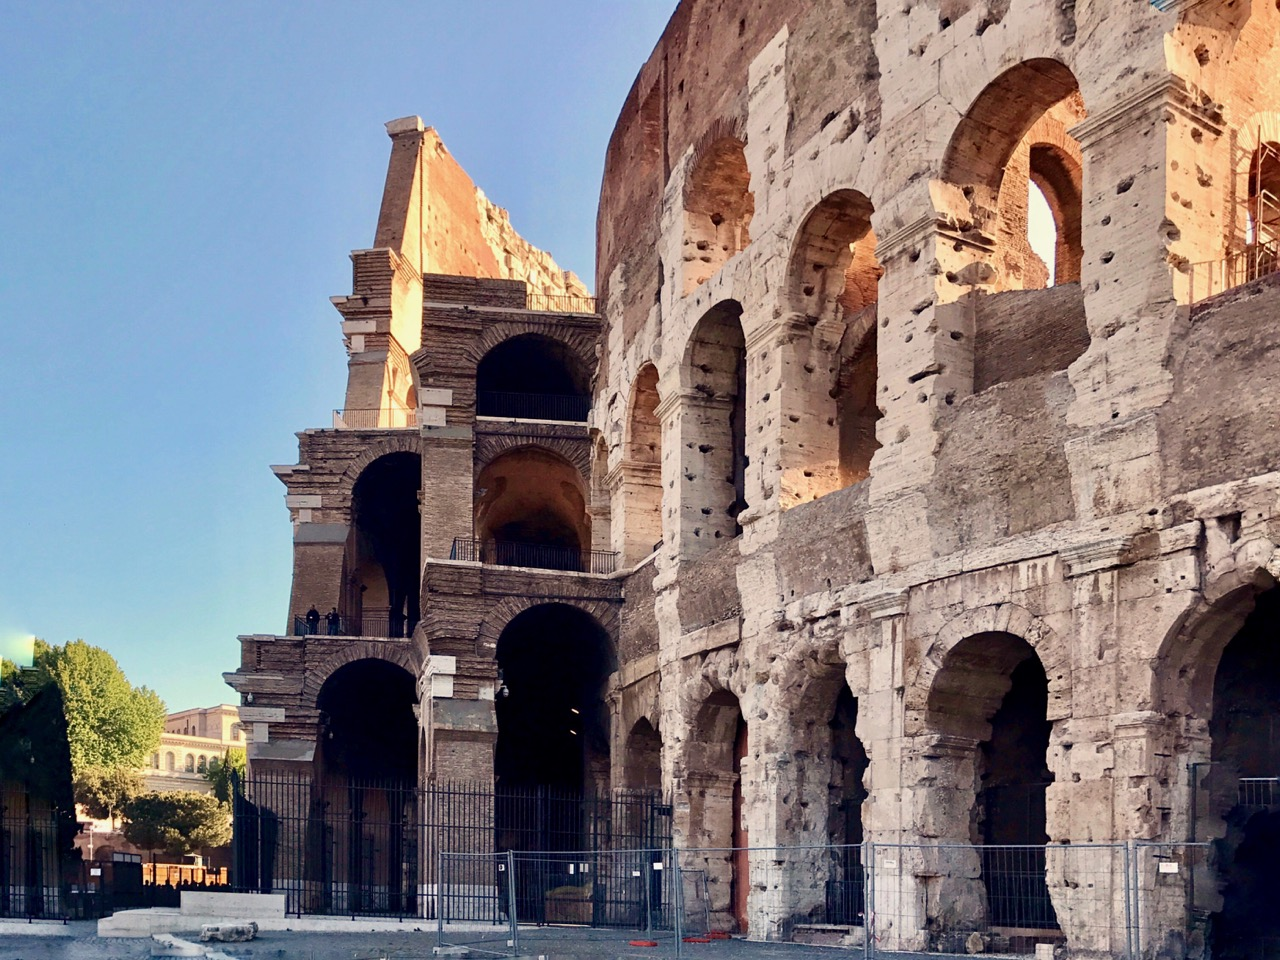 the inner shell and outer wall of the Rome colosseum